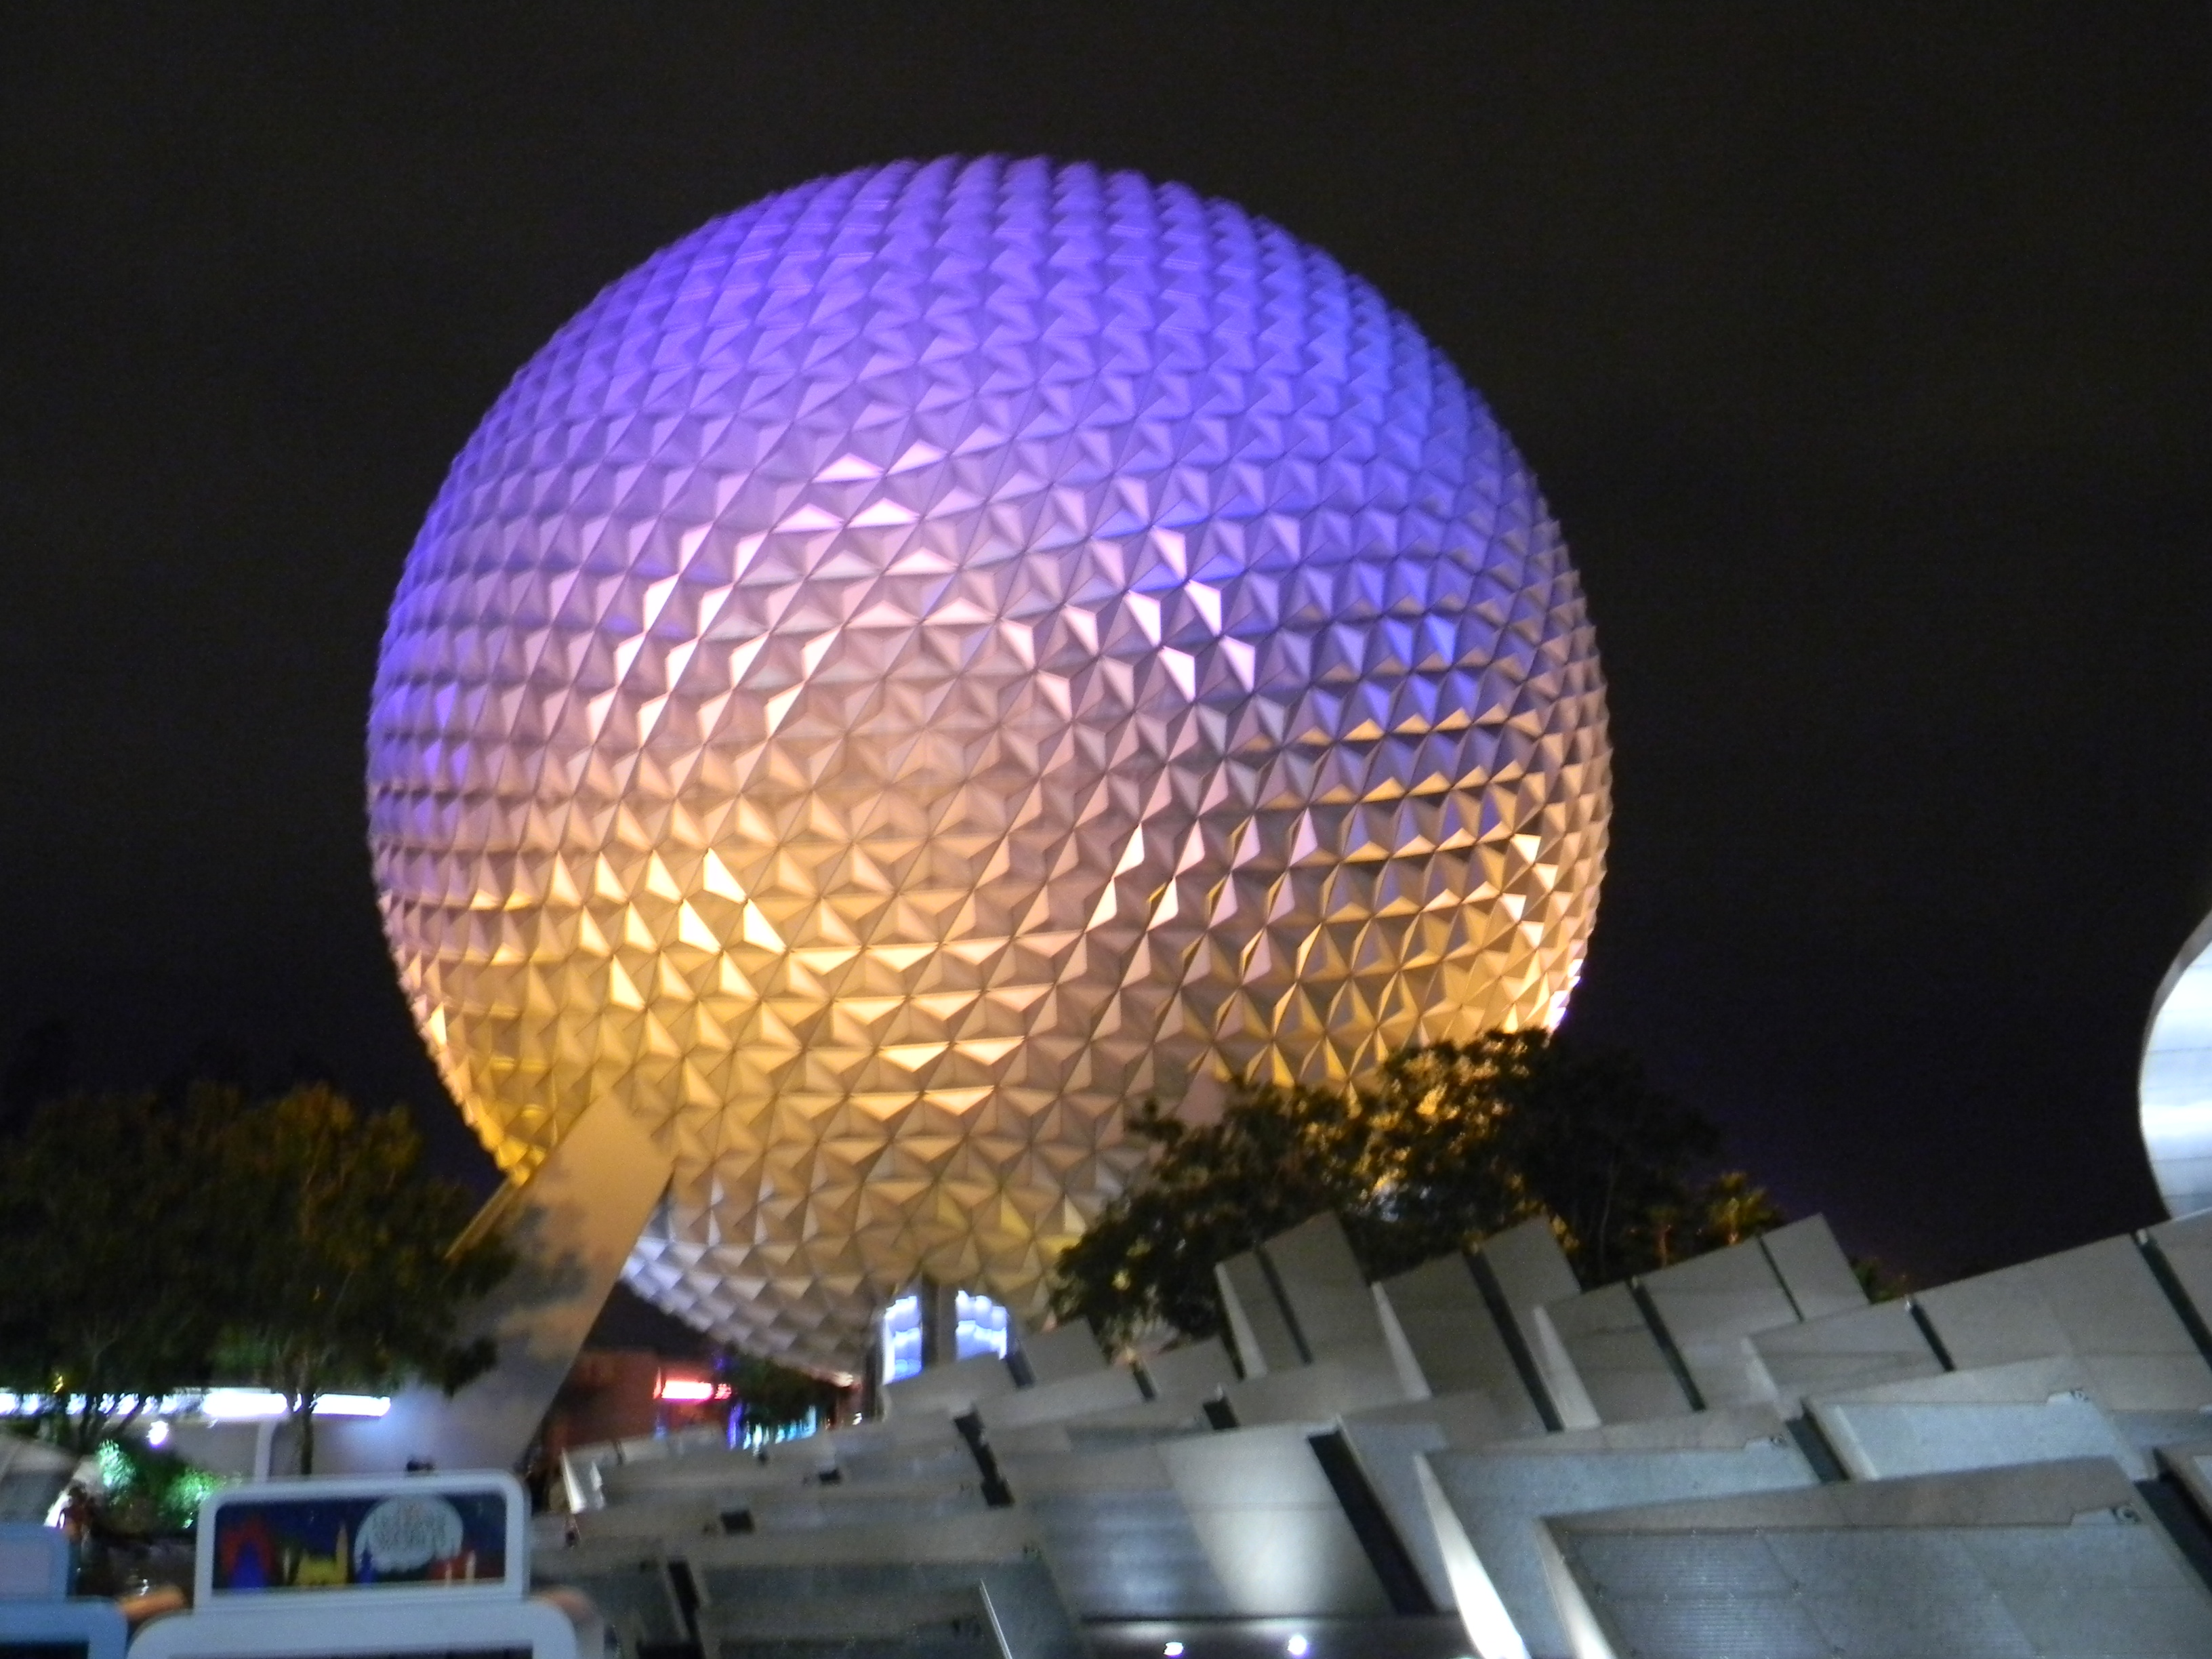 spaceship earth | Living in a grown up World